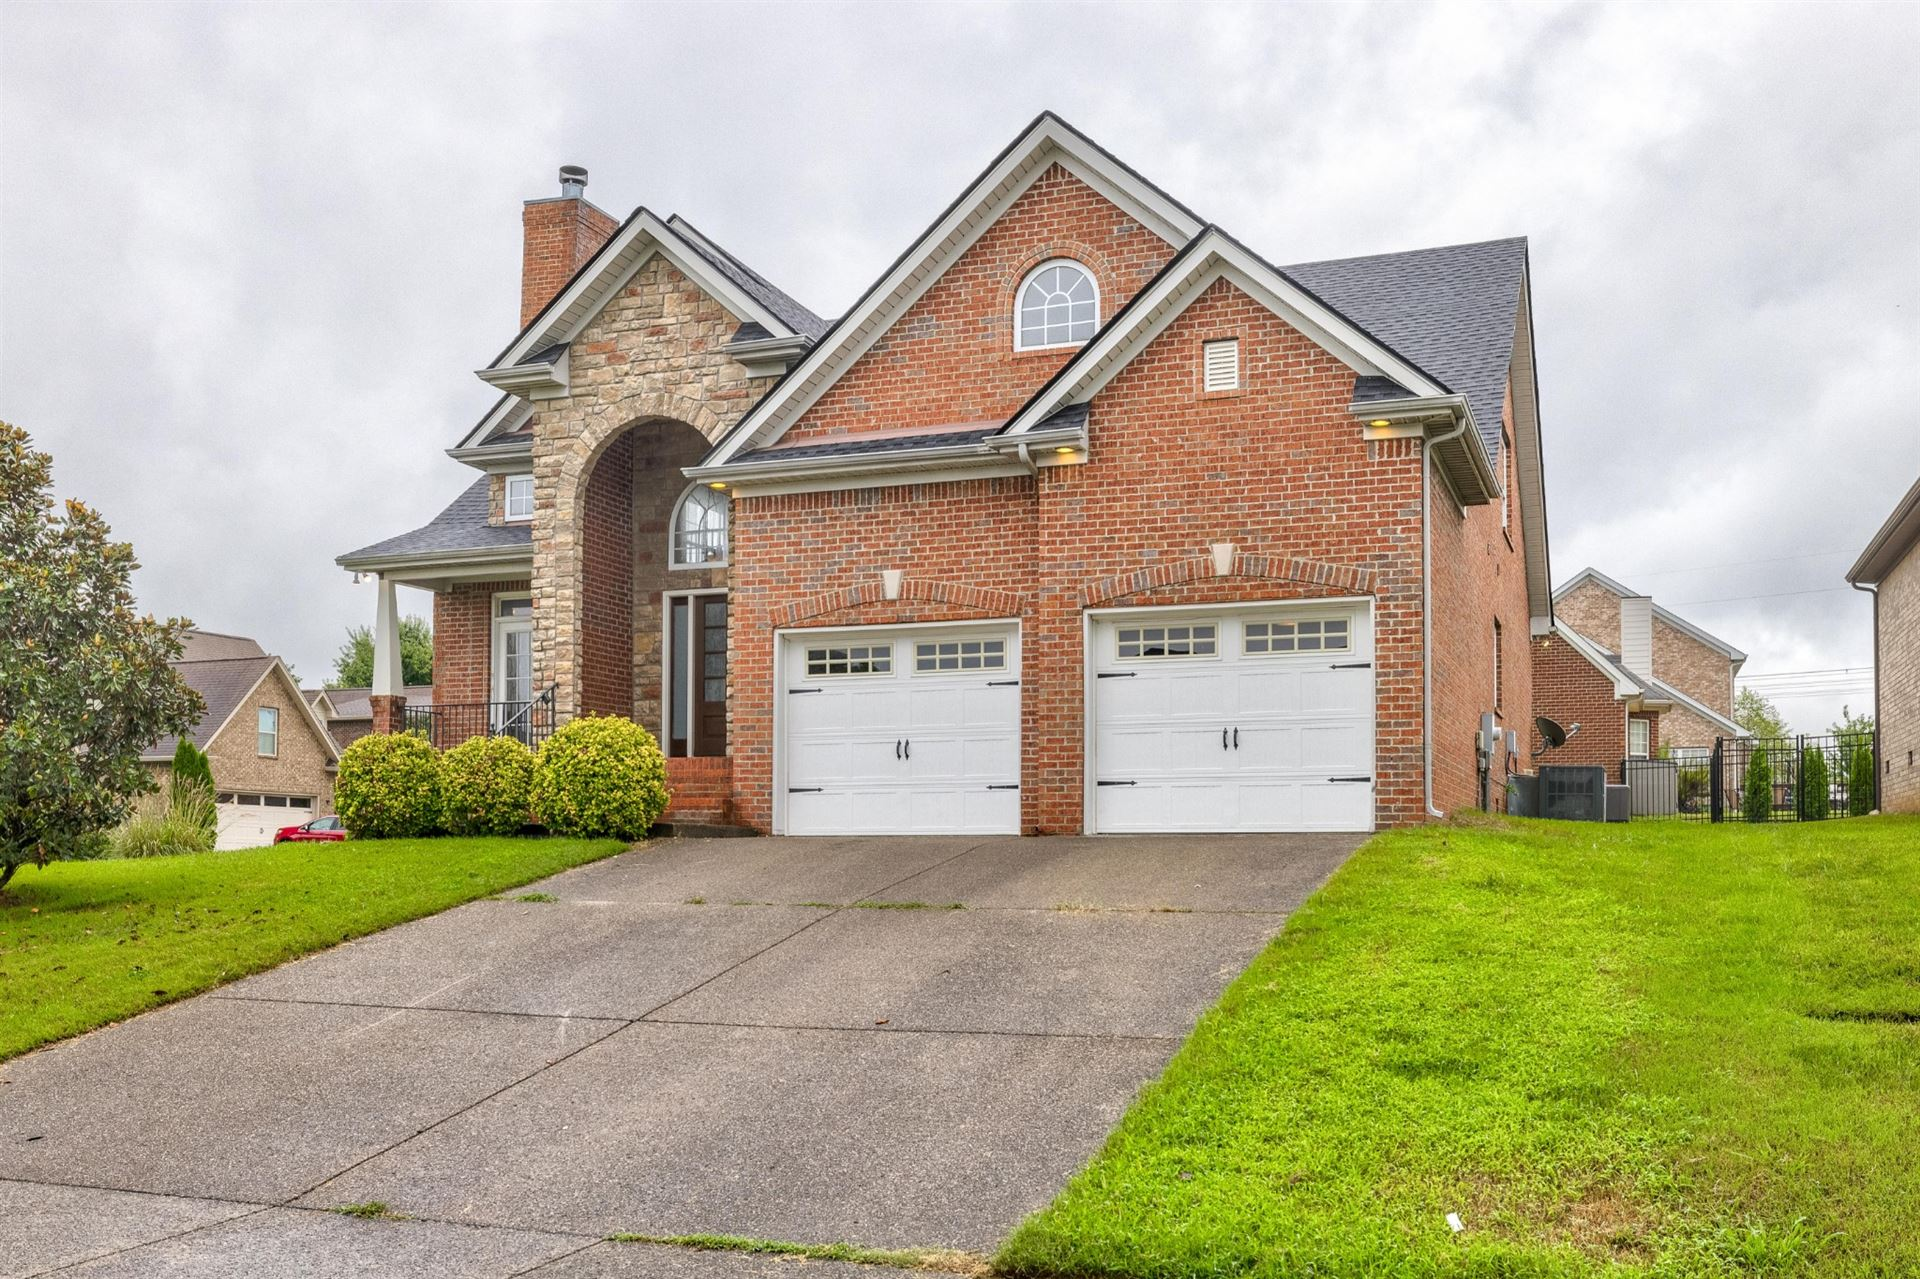 Photo of 2027 Sunflower Dr, Spring Hill, TN 37174 (MLS # 2287085)